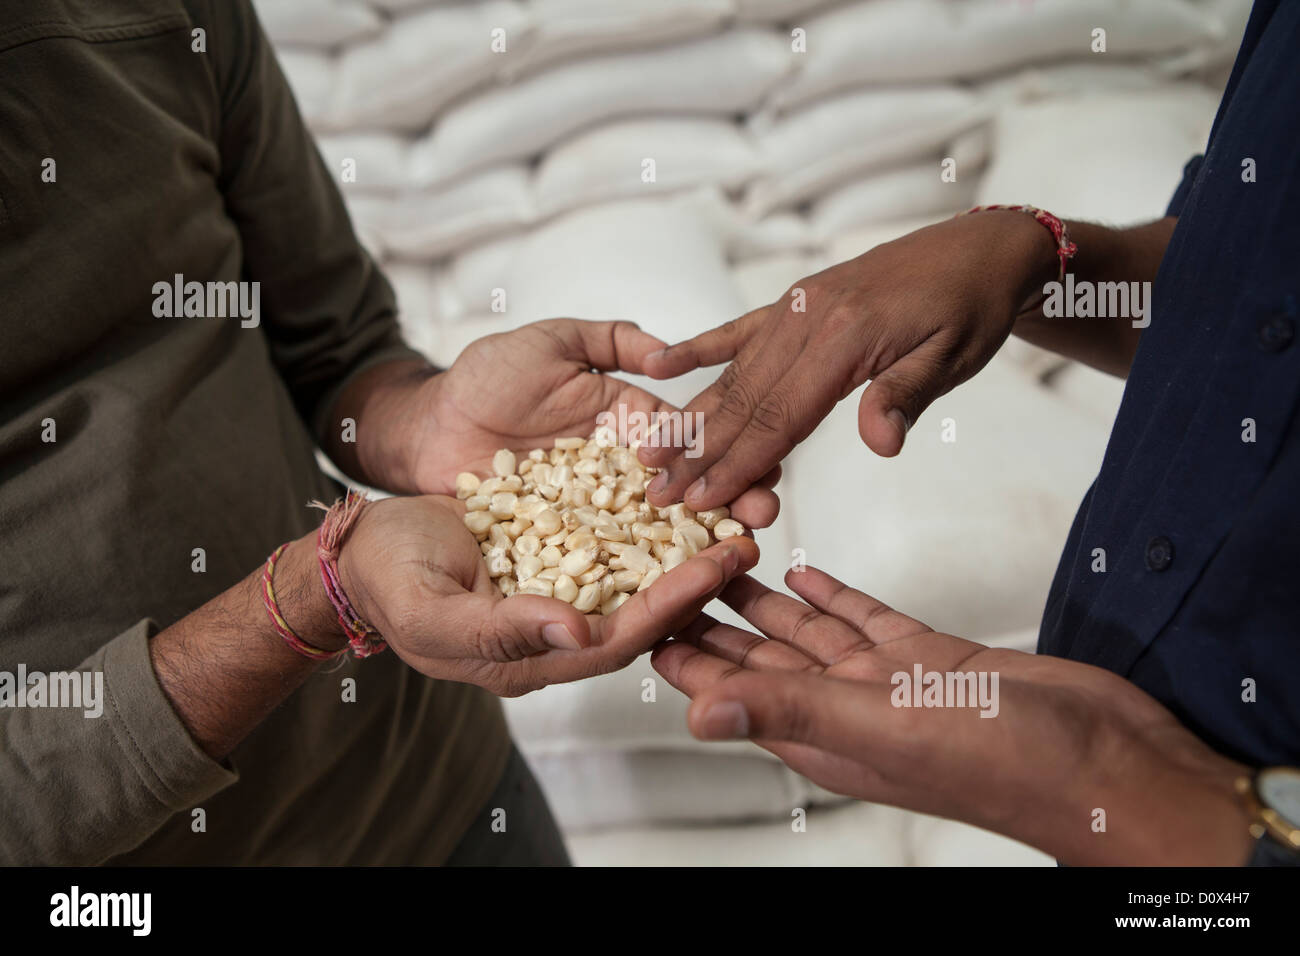 Workers analyze corn kernels at a warehouse in Kampala, Uganda, East Africa. - Stock Image